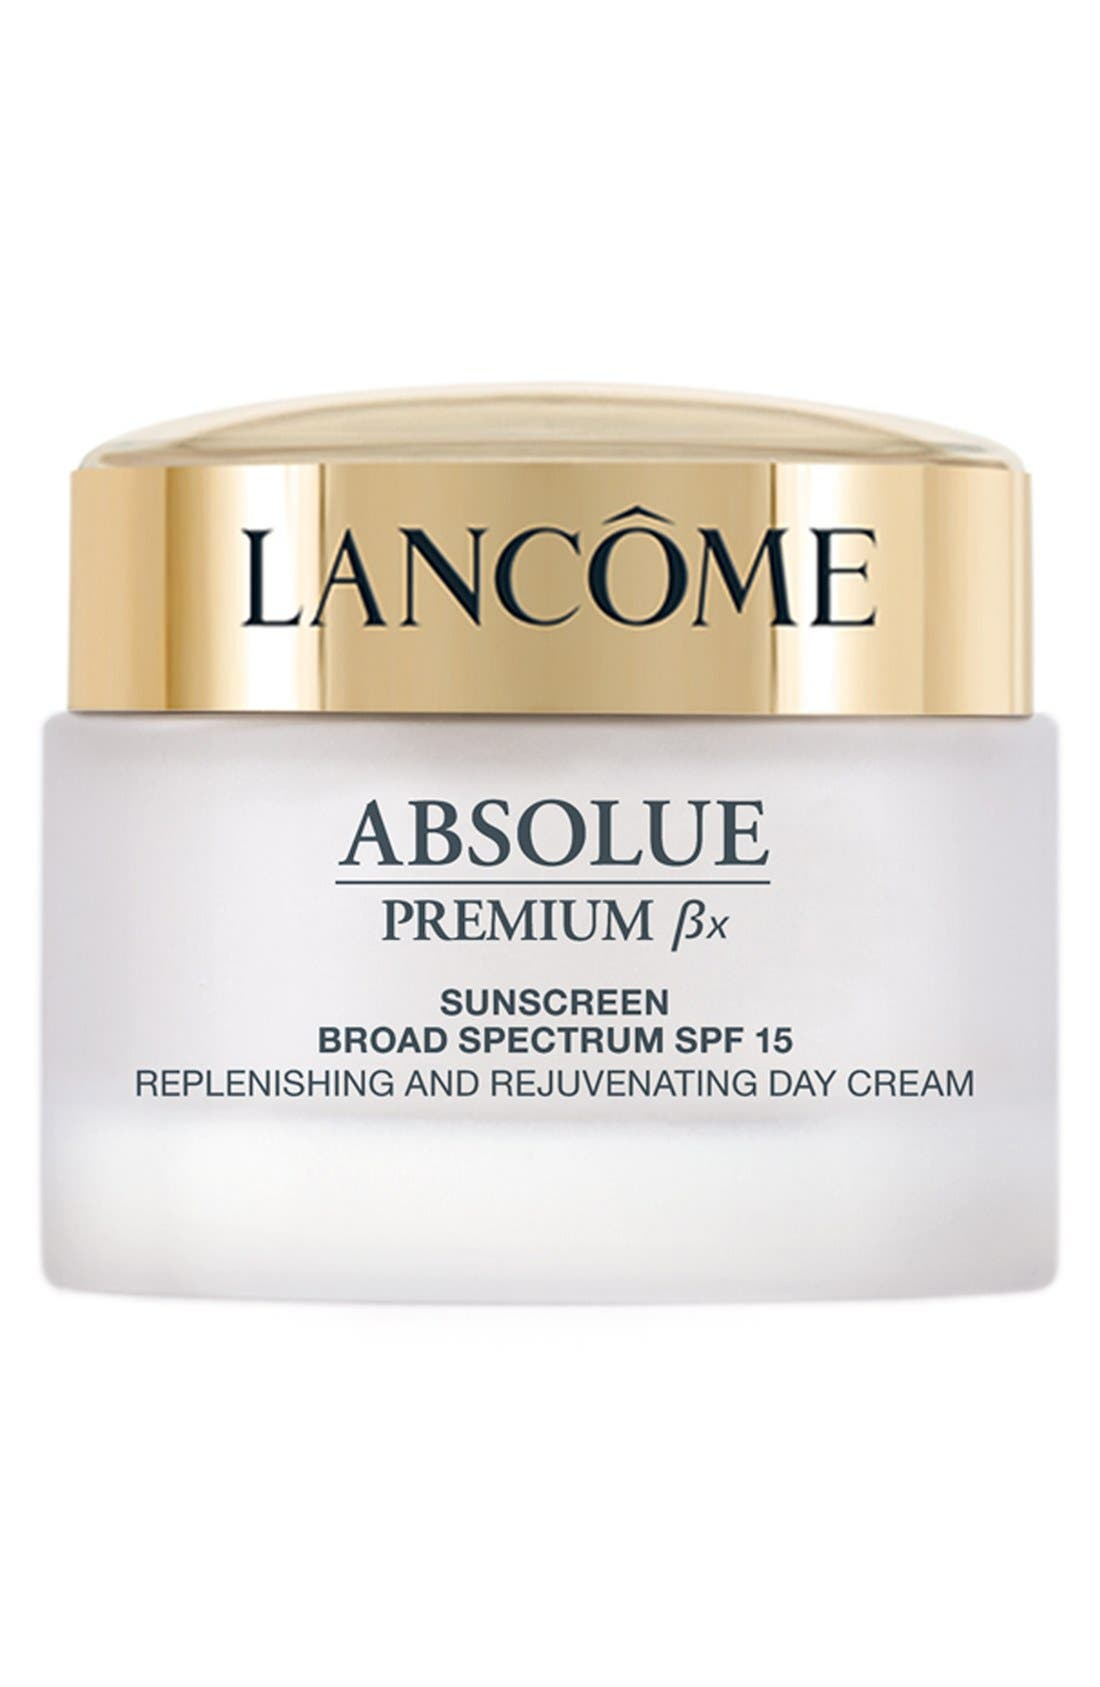 Absolue Premium Bx SPF 15 Moisturizer Cream,                         Main,                         color, NO COLOR